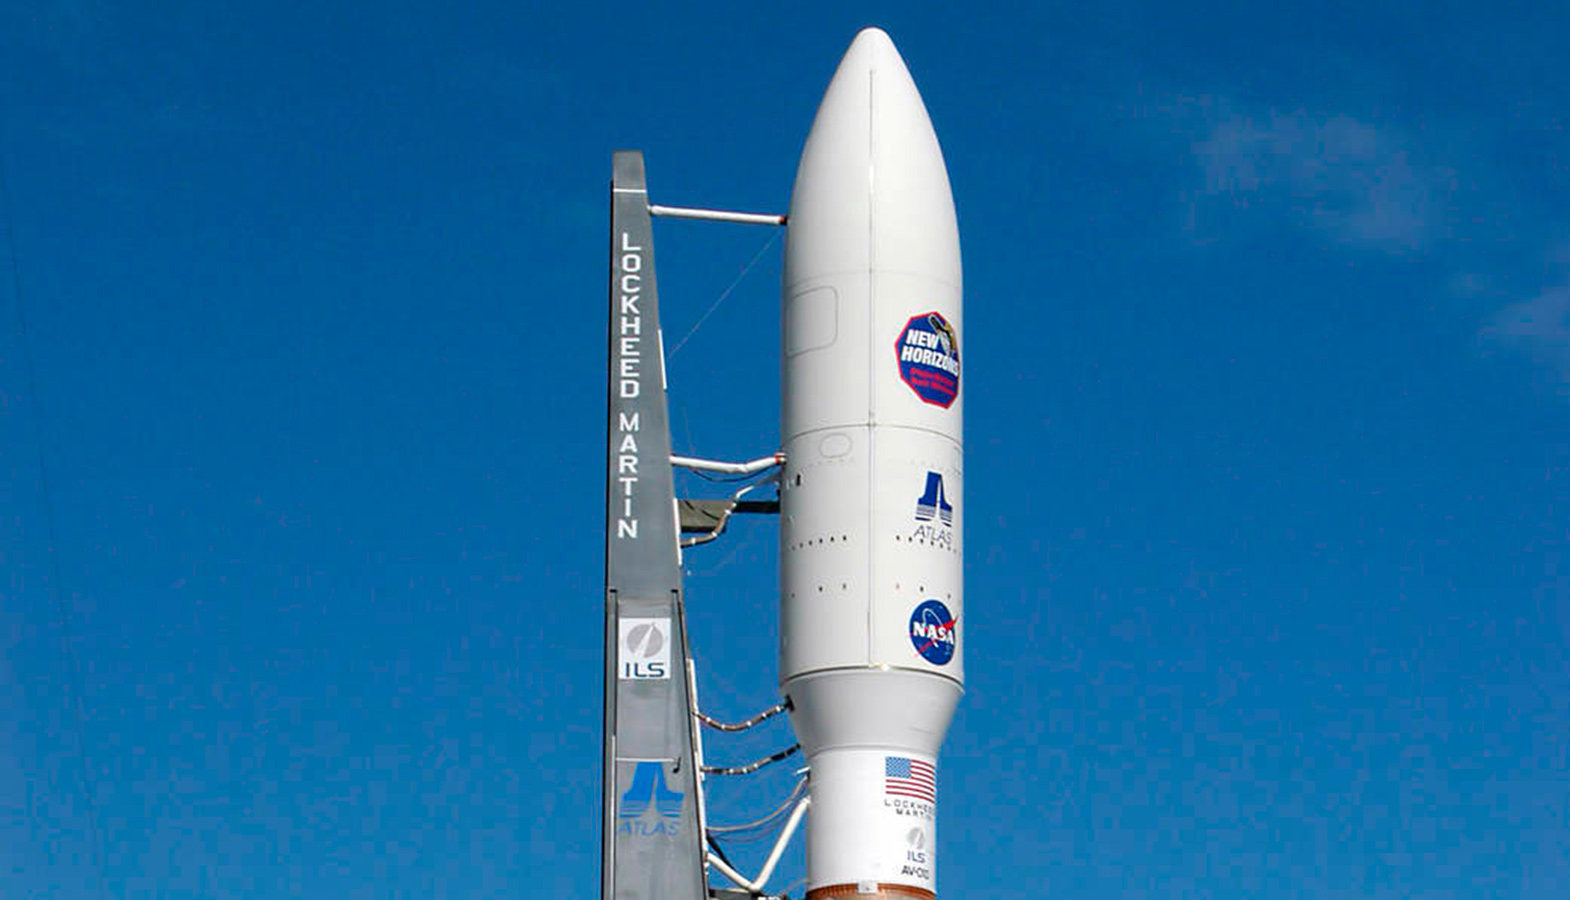 A Launch Vehicle Atlas V With The Perseverance Rover Launched From The Cape Canaveral Spaceport